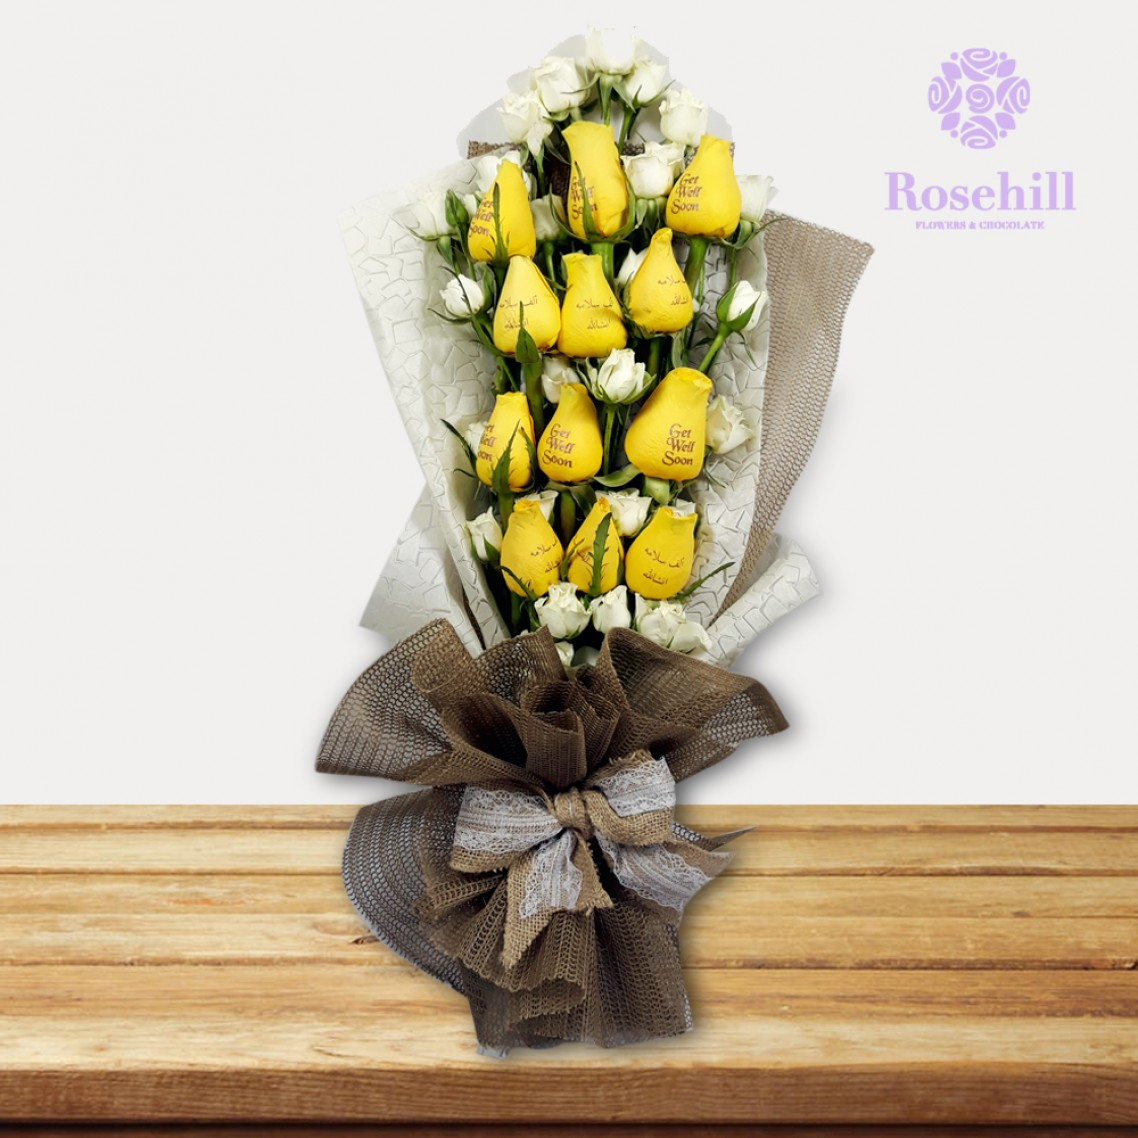 1524671948-h-250-_Rosehill's Get Well Soon Bouquet with Spray Roses- Yellow.jpg